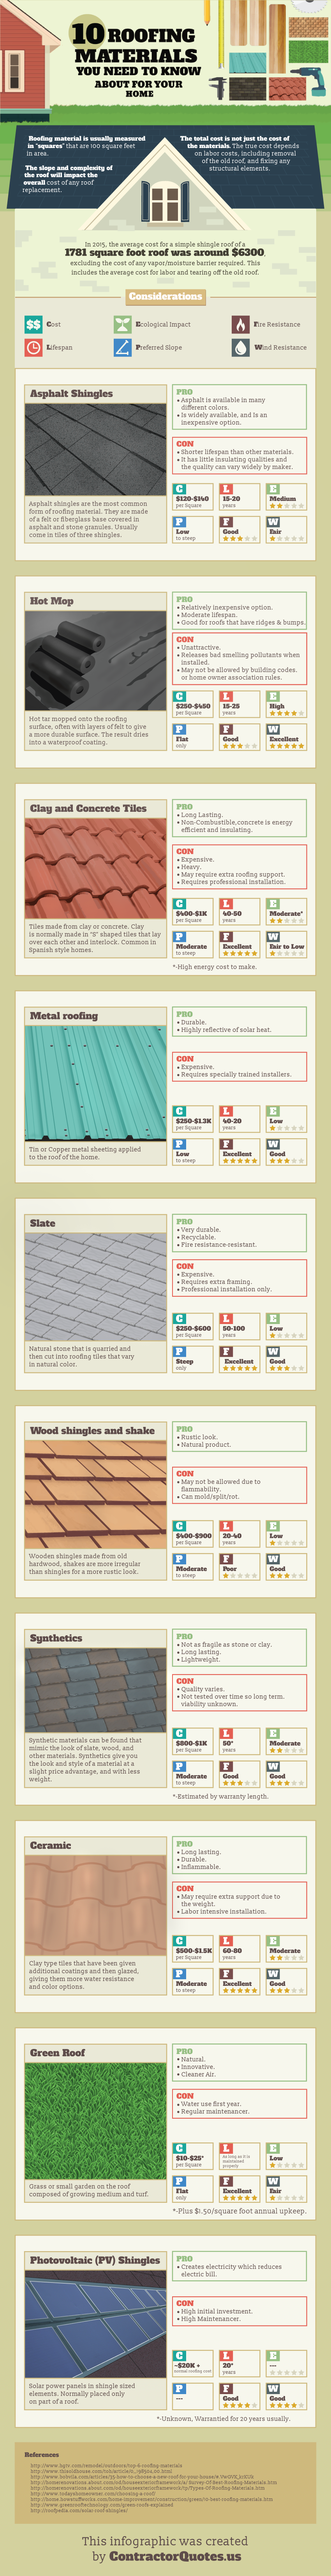 10 roofing materials for your home